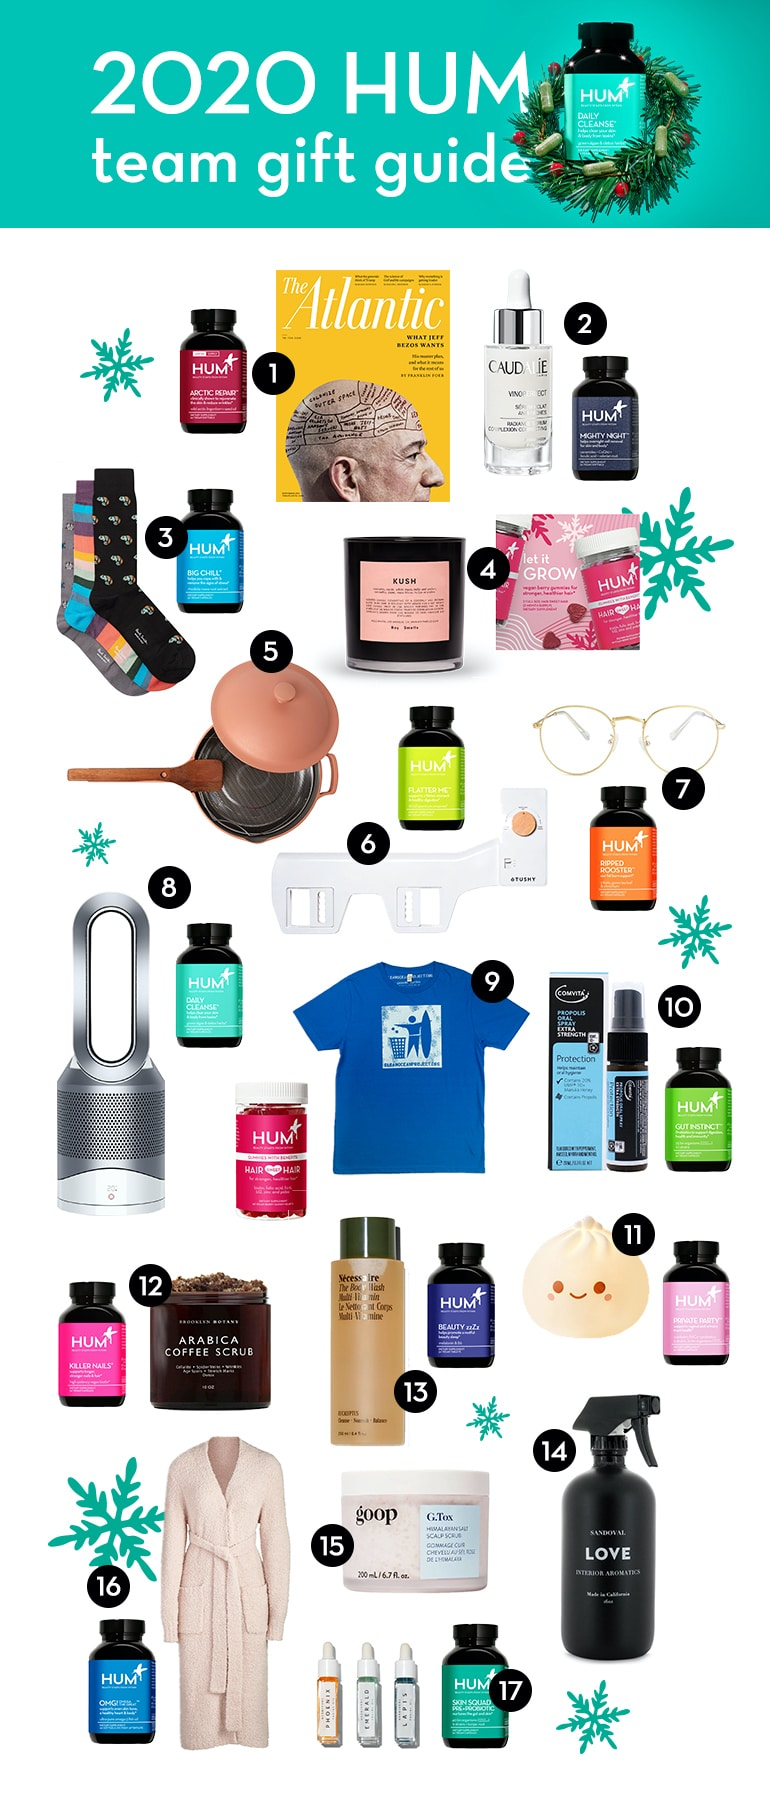 Team HUM's holiday gift guide suggestions for 2020